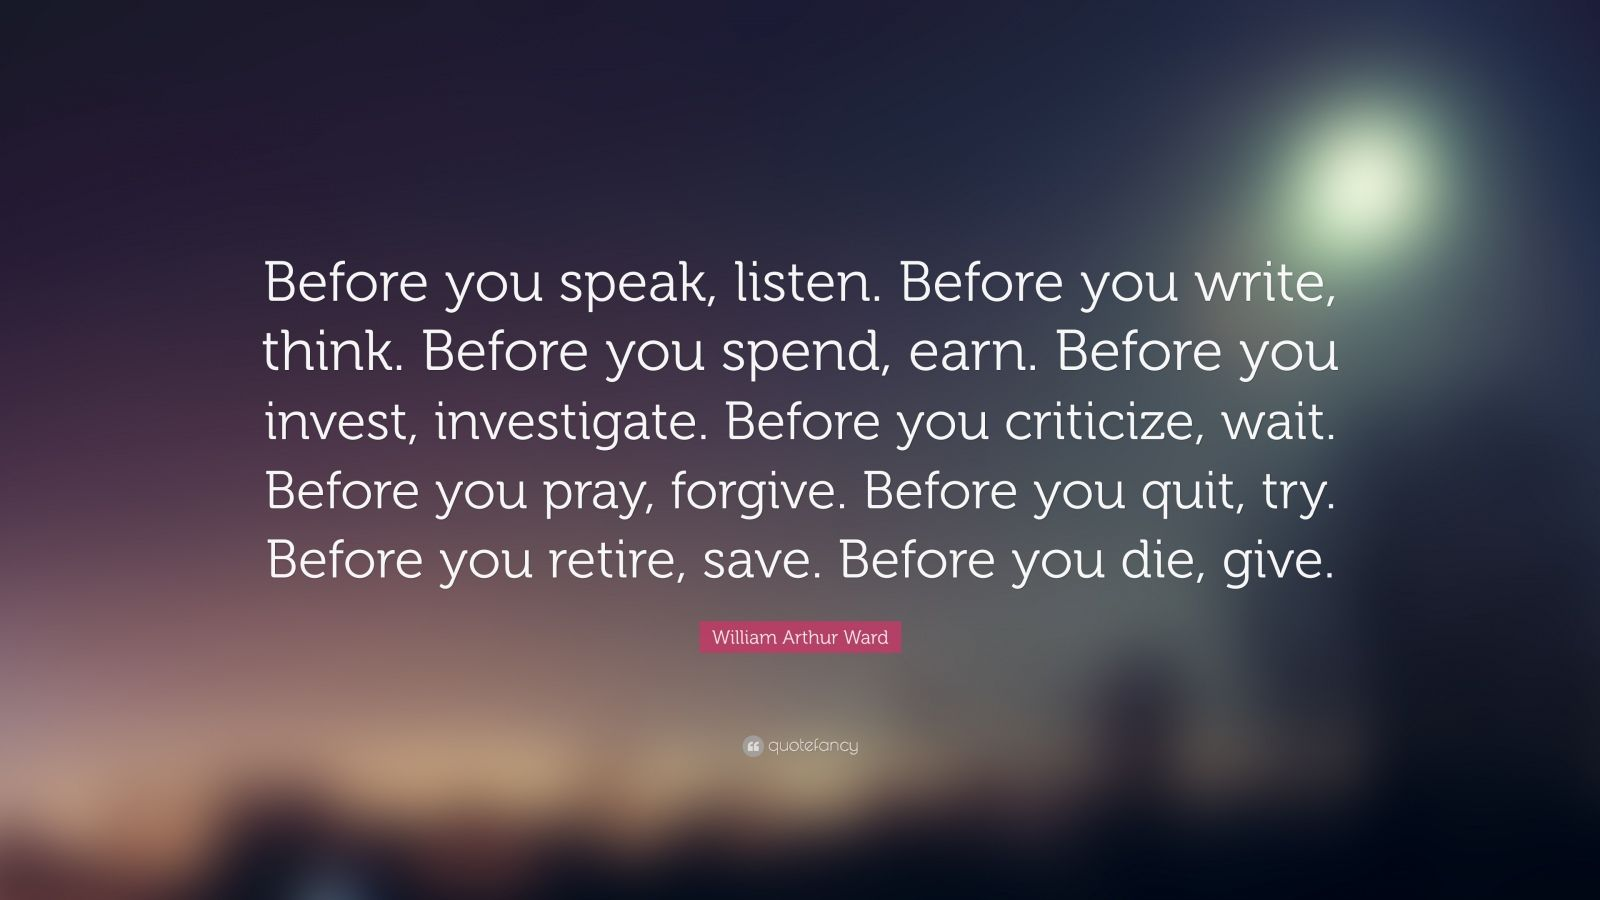 "Quotes About Money: ""Before you speak, listen. Before you write, think. Before you spend, earn. Before you invest, investigate. Before you criticize, wait. Before you pray, forgive. Before you quit, try. Before you retire, save. Before you die, give."" — William Arthur Ward"